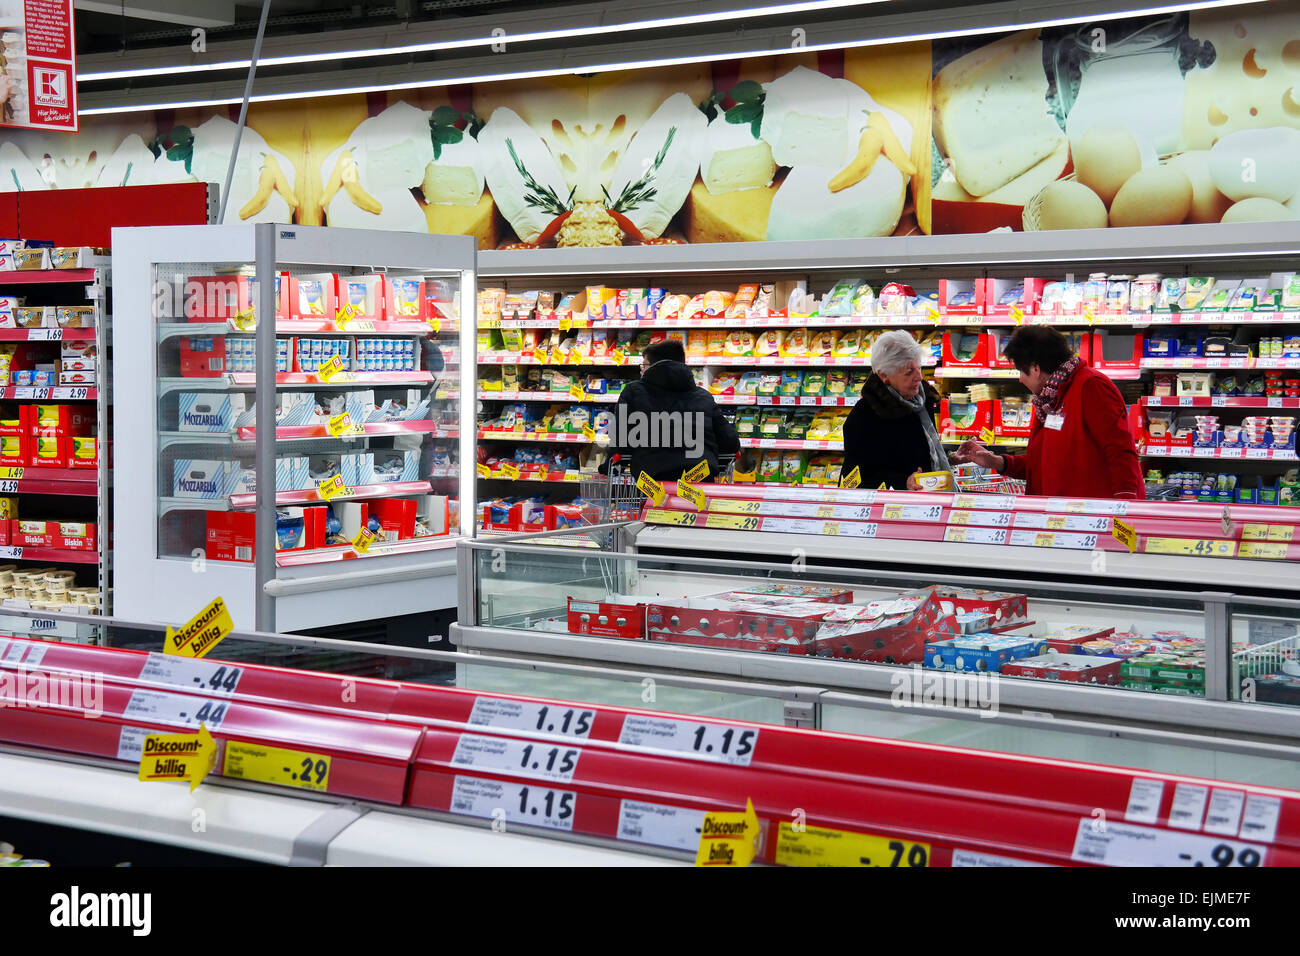 GERMANY - FEBRUARY 2015: Refrigerated department with chilled foodstuff in a Kaufland supermarket. - Stock Image